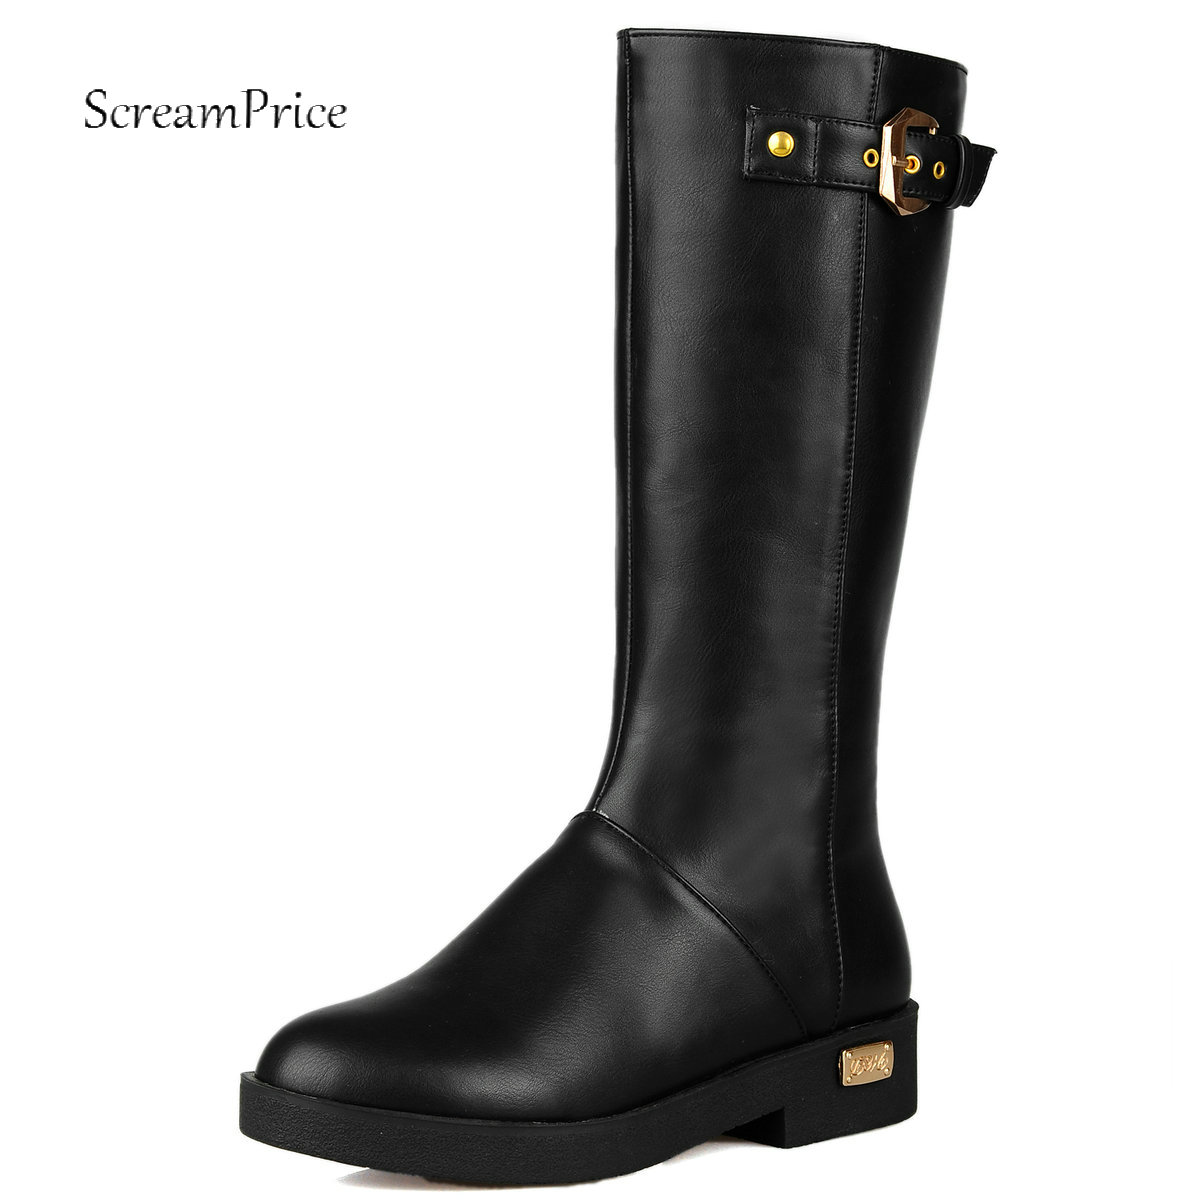 Women Flat Boots Zipper Round Toe Fashion Knee High Boots PU Leather Autumn Winter Ladies Shoes Black Brown Plus Size 2018 New plus size 34 43 winter autumn women soft leather knot low heels lovely knee high boots 3colors pink ladies fashion female shoes